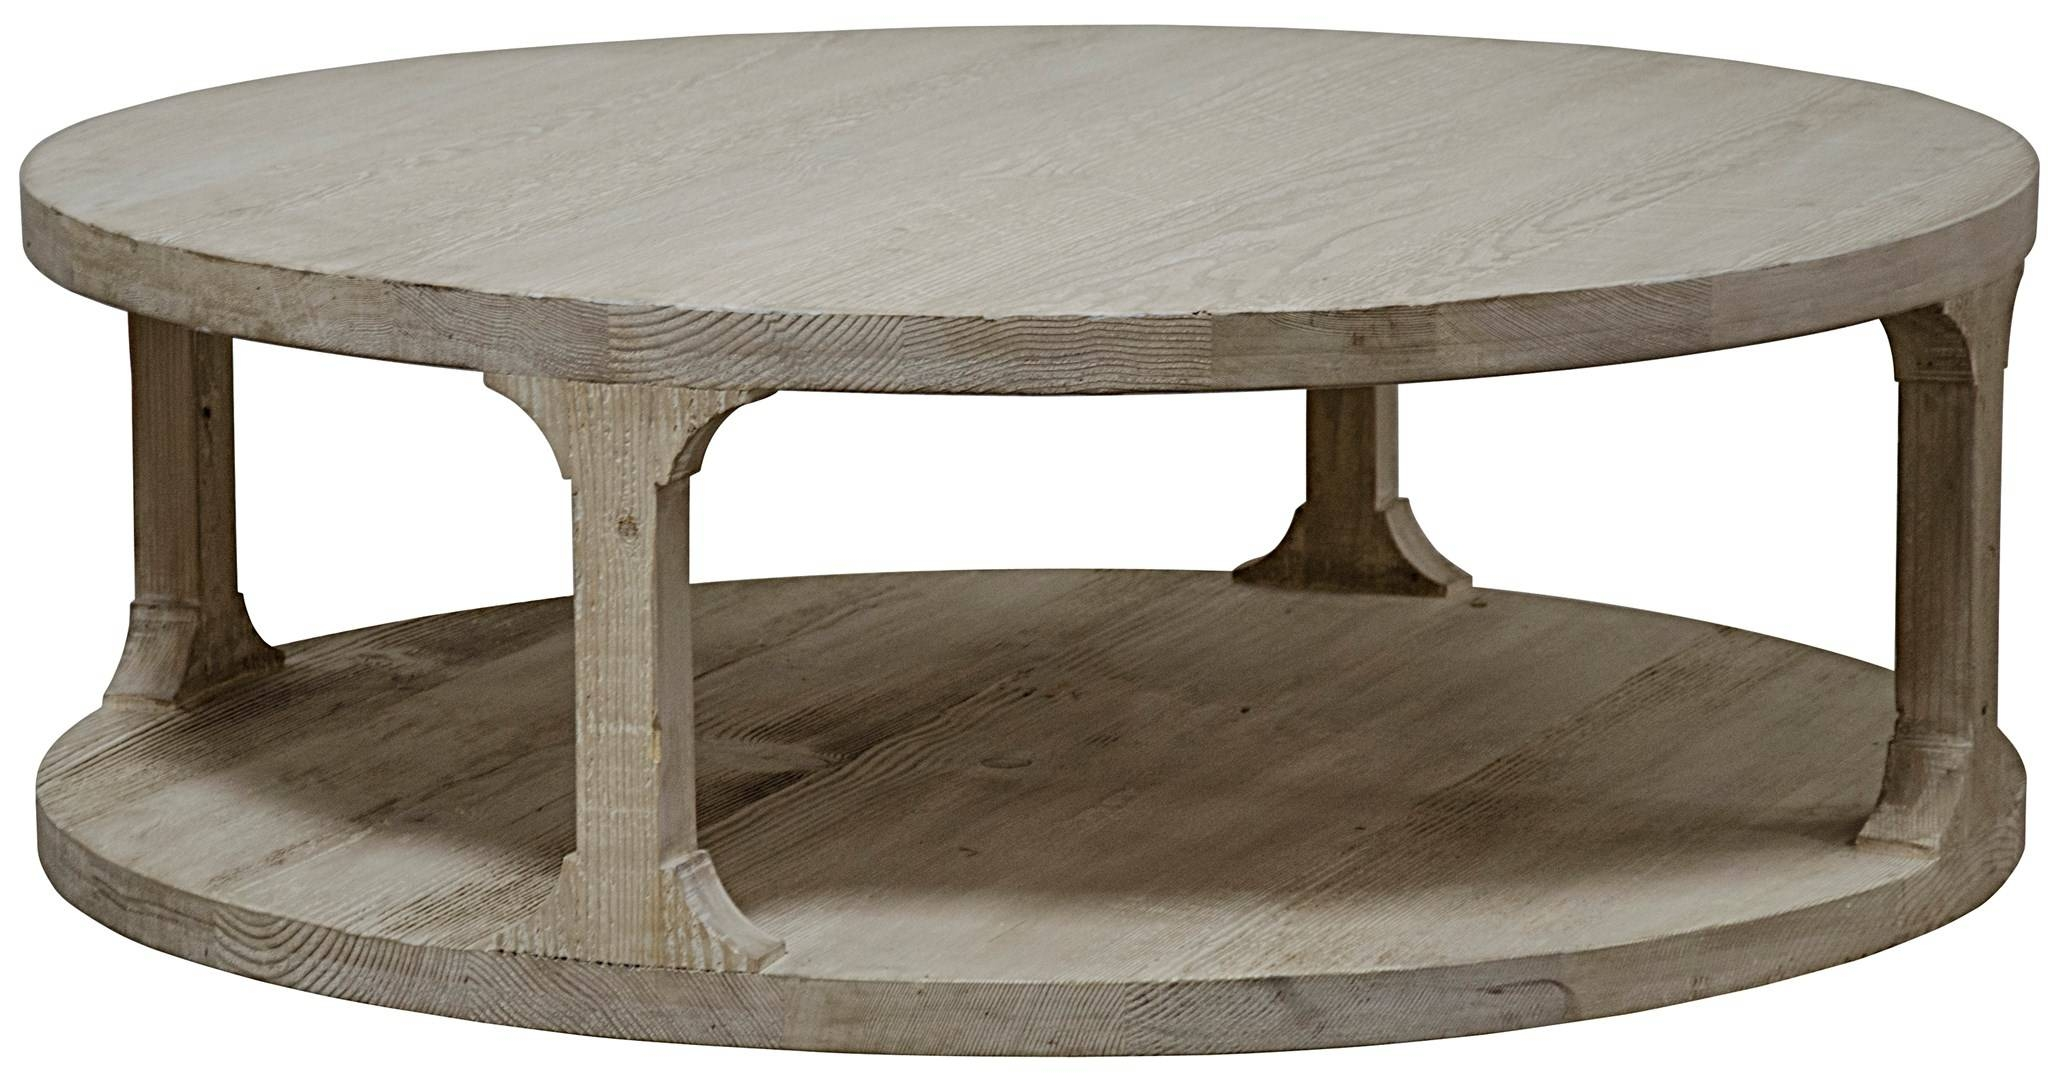 Cfc :: pertaining to Round Coffee Tables (Image 7 of 30)